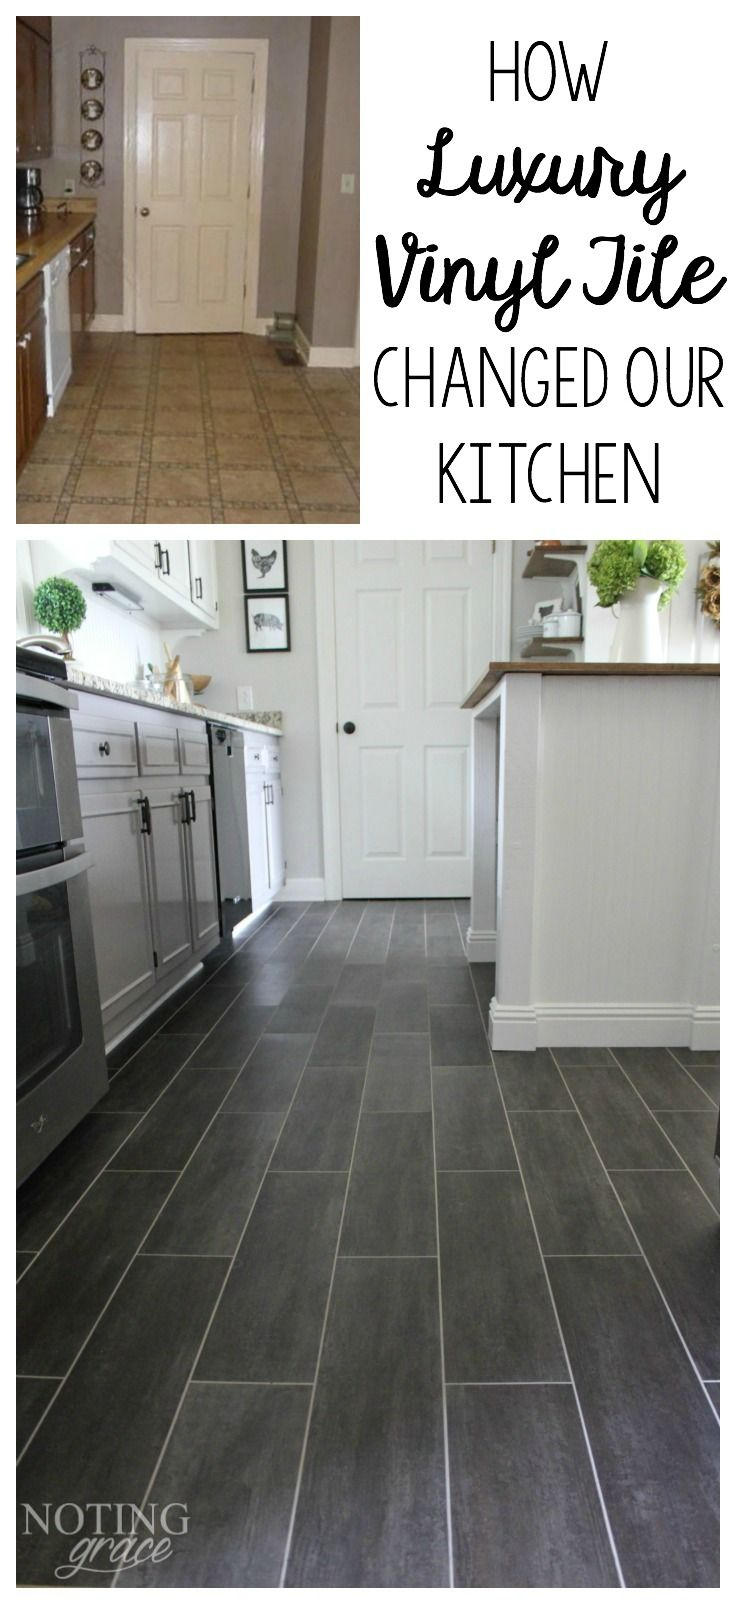 Kitchen Vinyl Ways To Redo Cabinets Diy Flooring Ideas It Took Only 3 Days And 400 Completely Transform Our With Groutable Luxury Tile